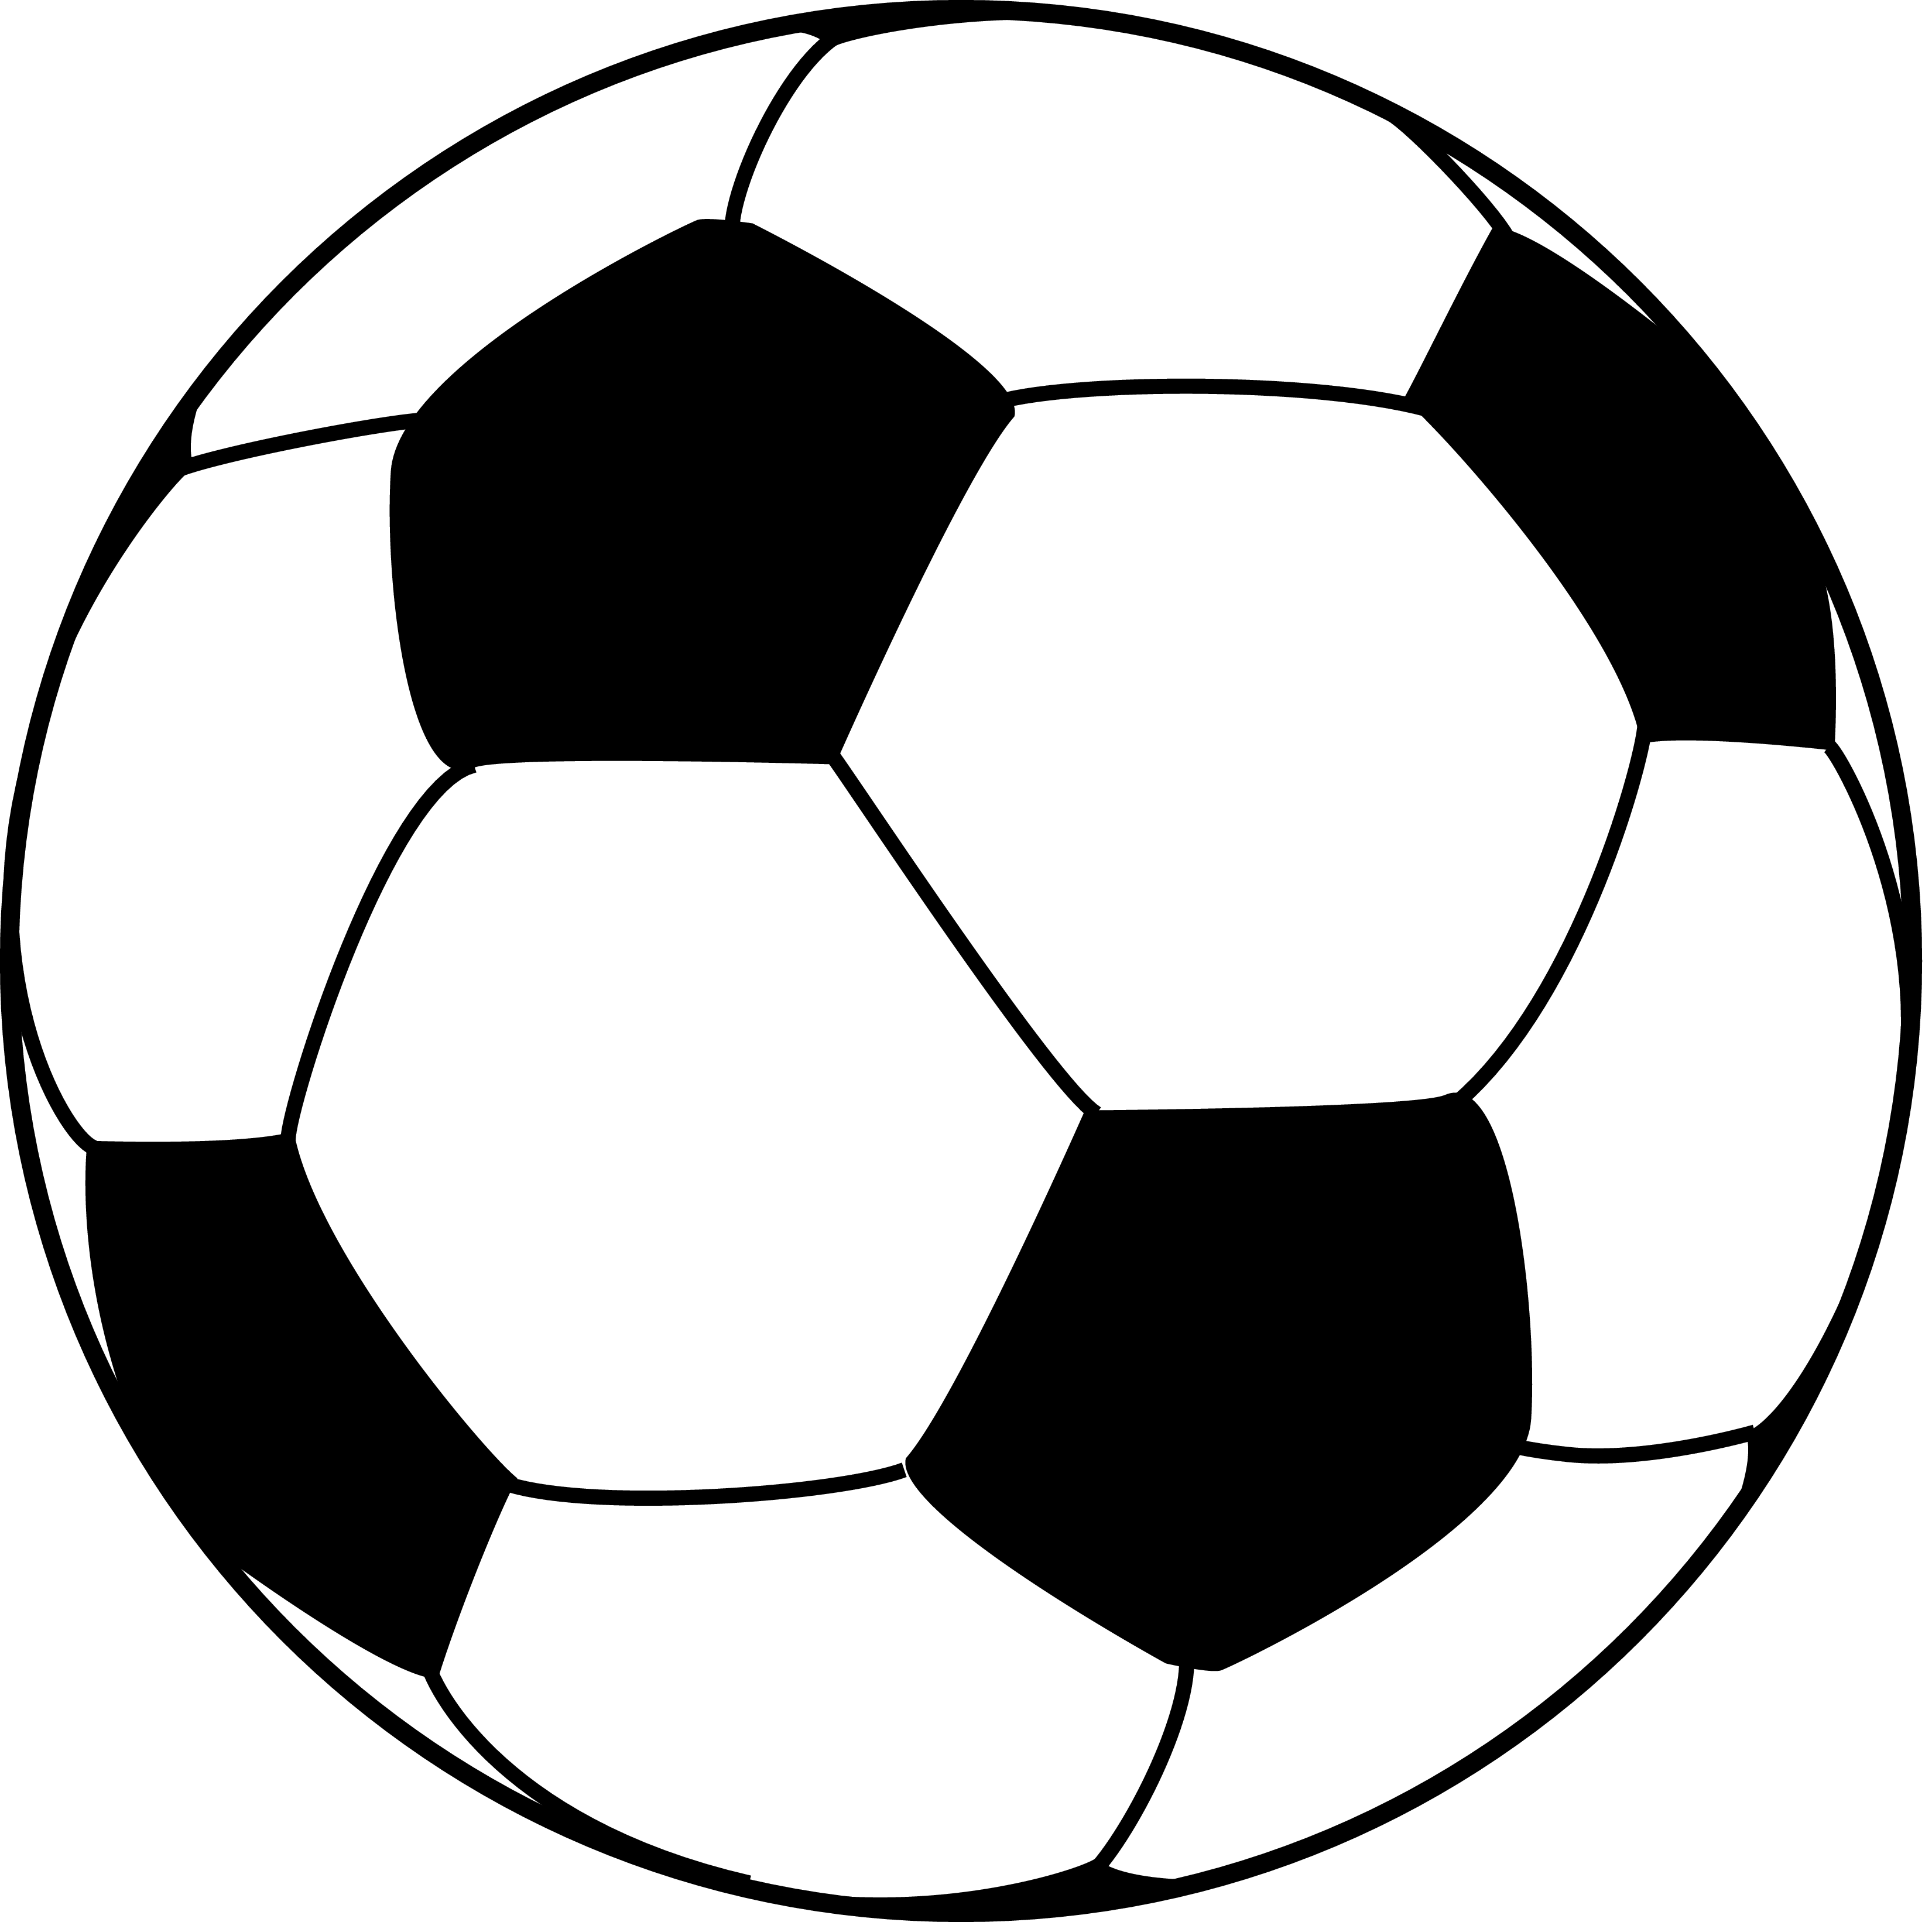 Clip Art Clip Art Soccer Ball soccer ball clipart kid can t find the perfect clip art